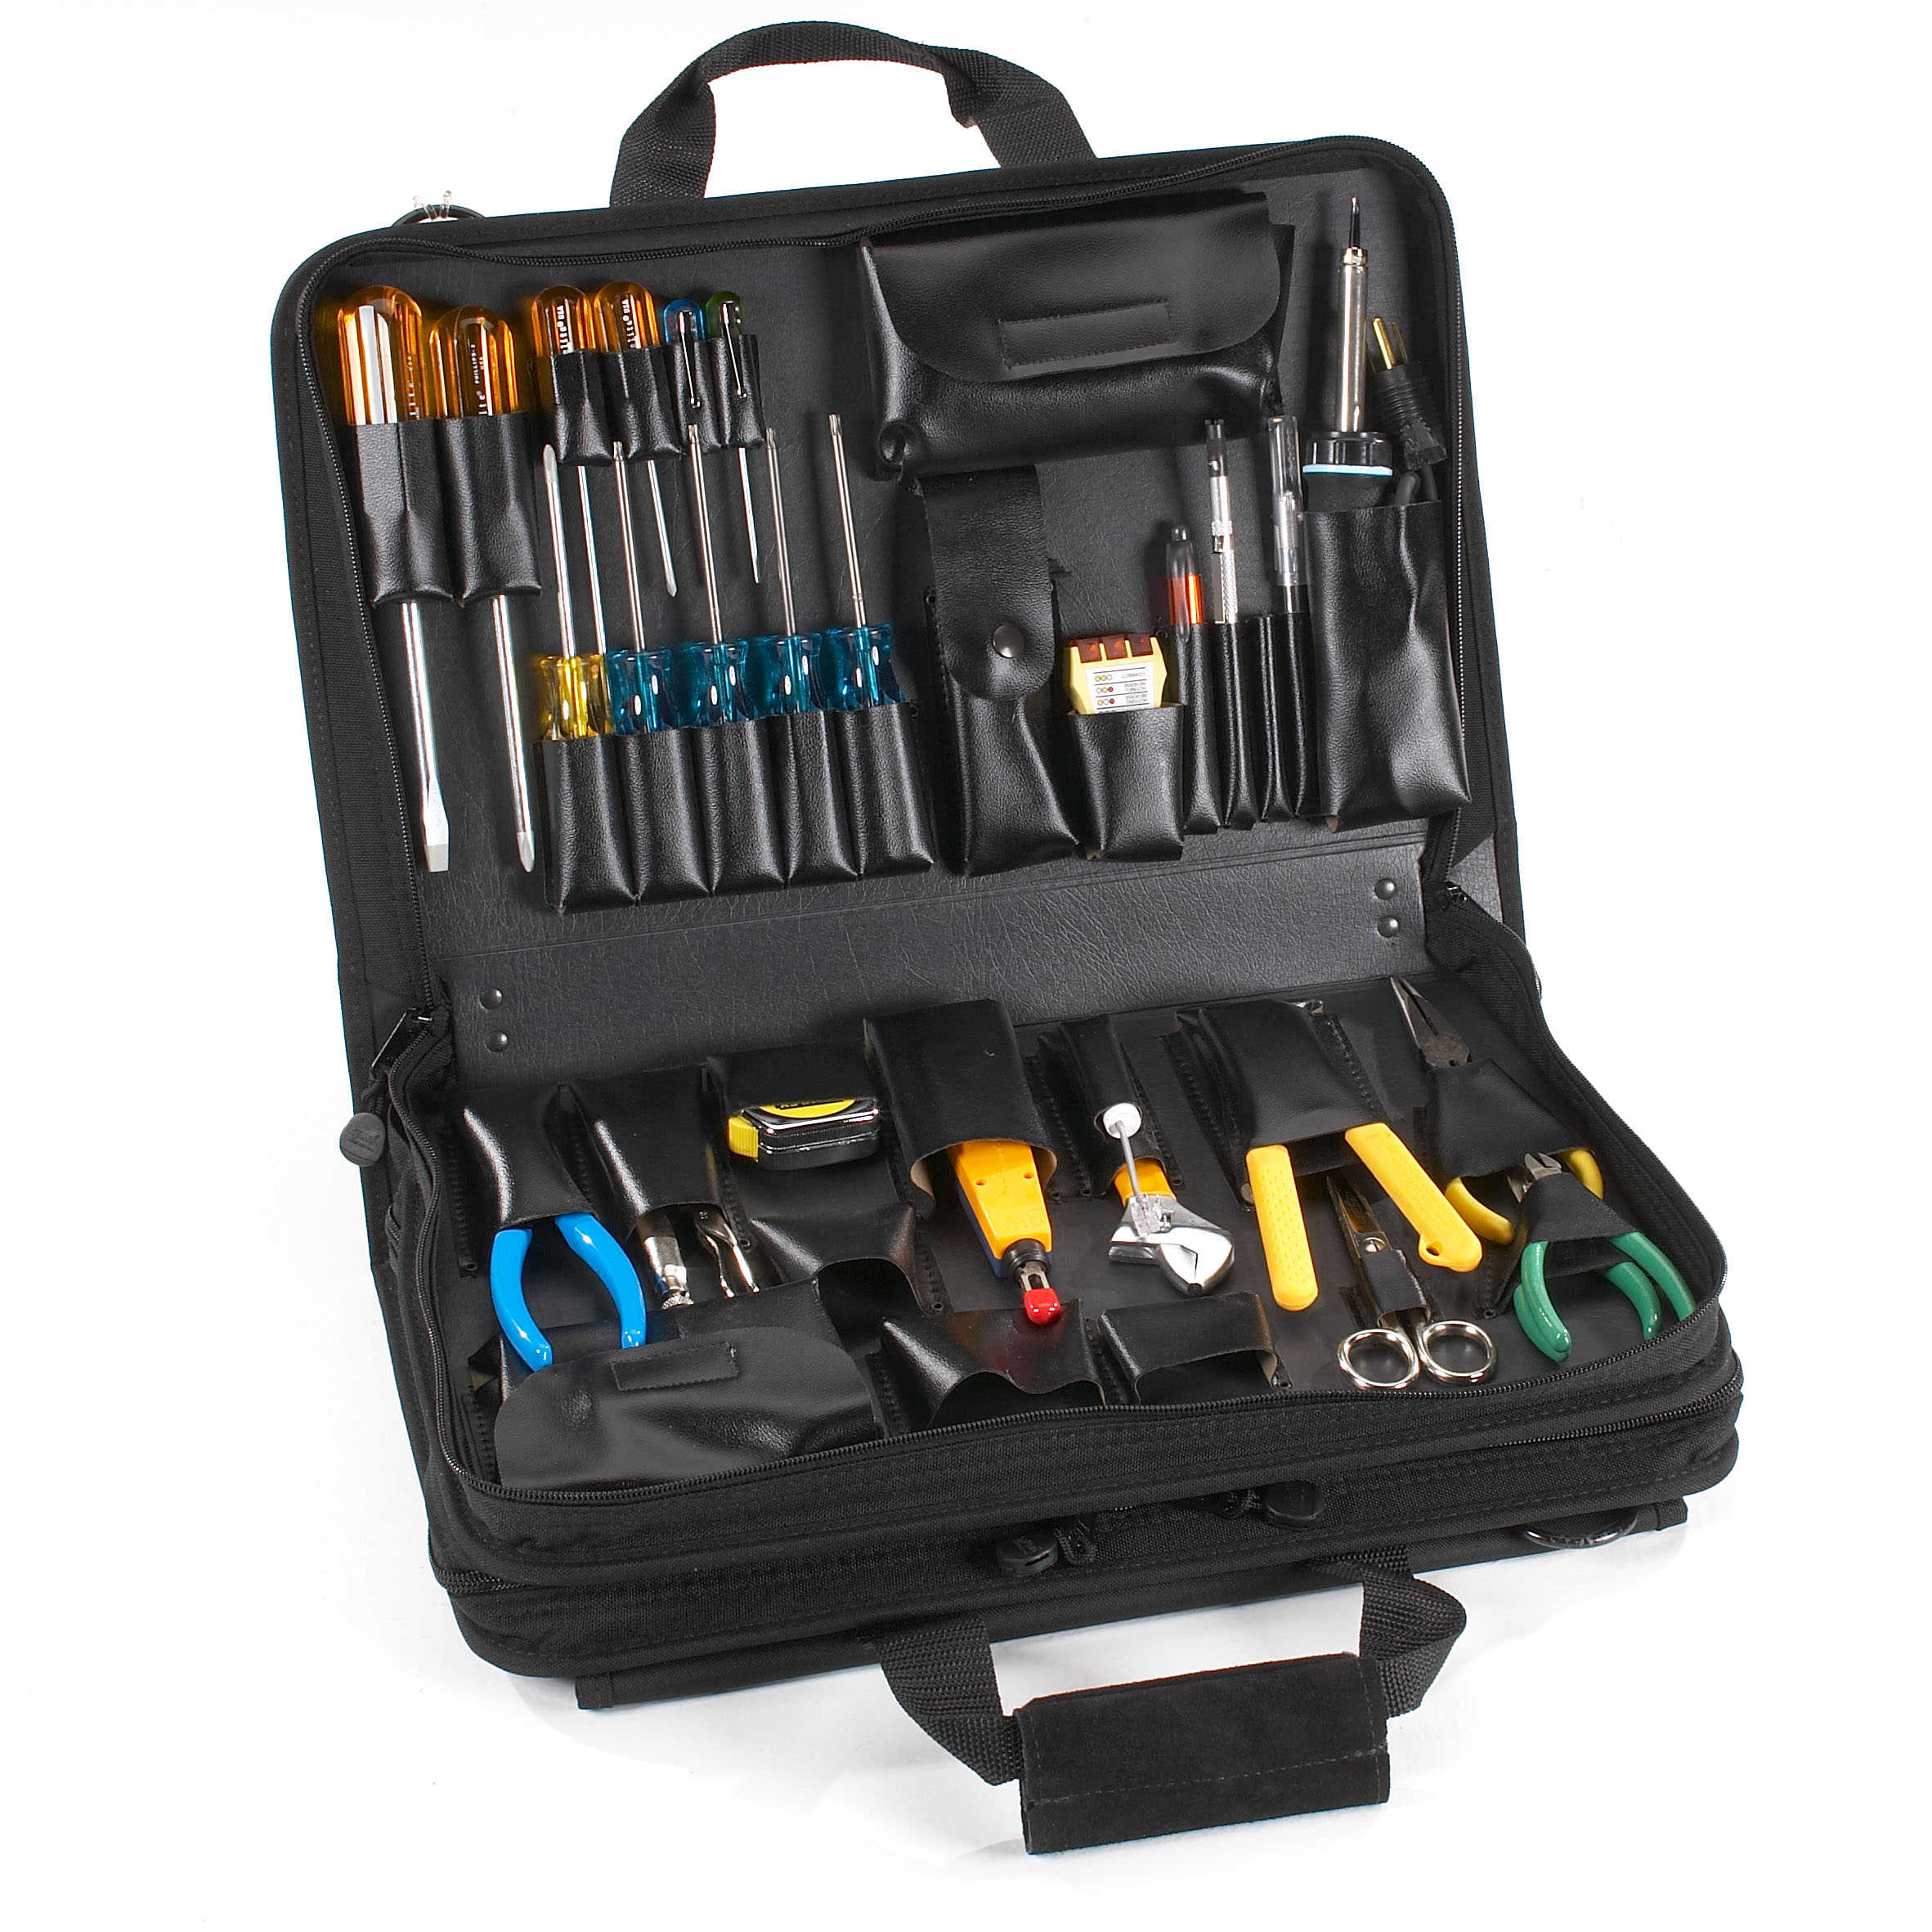 Twisted Pair Wiring Solutions Ltd Lan Tool Kit Black Box Additional Product Image